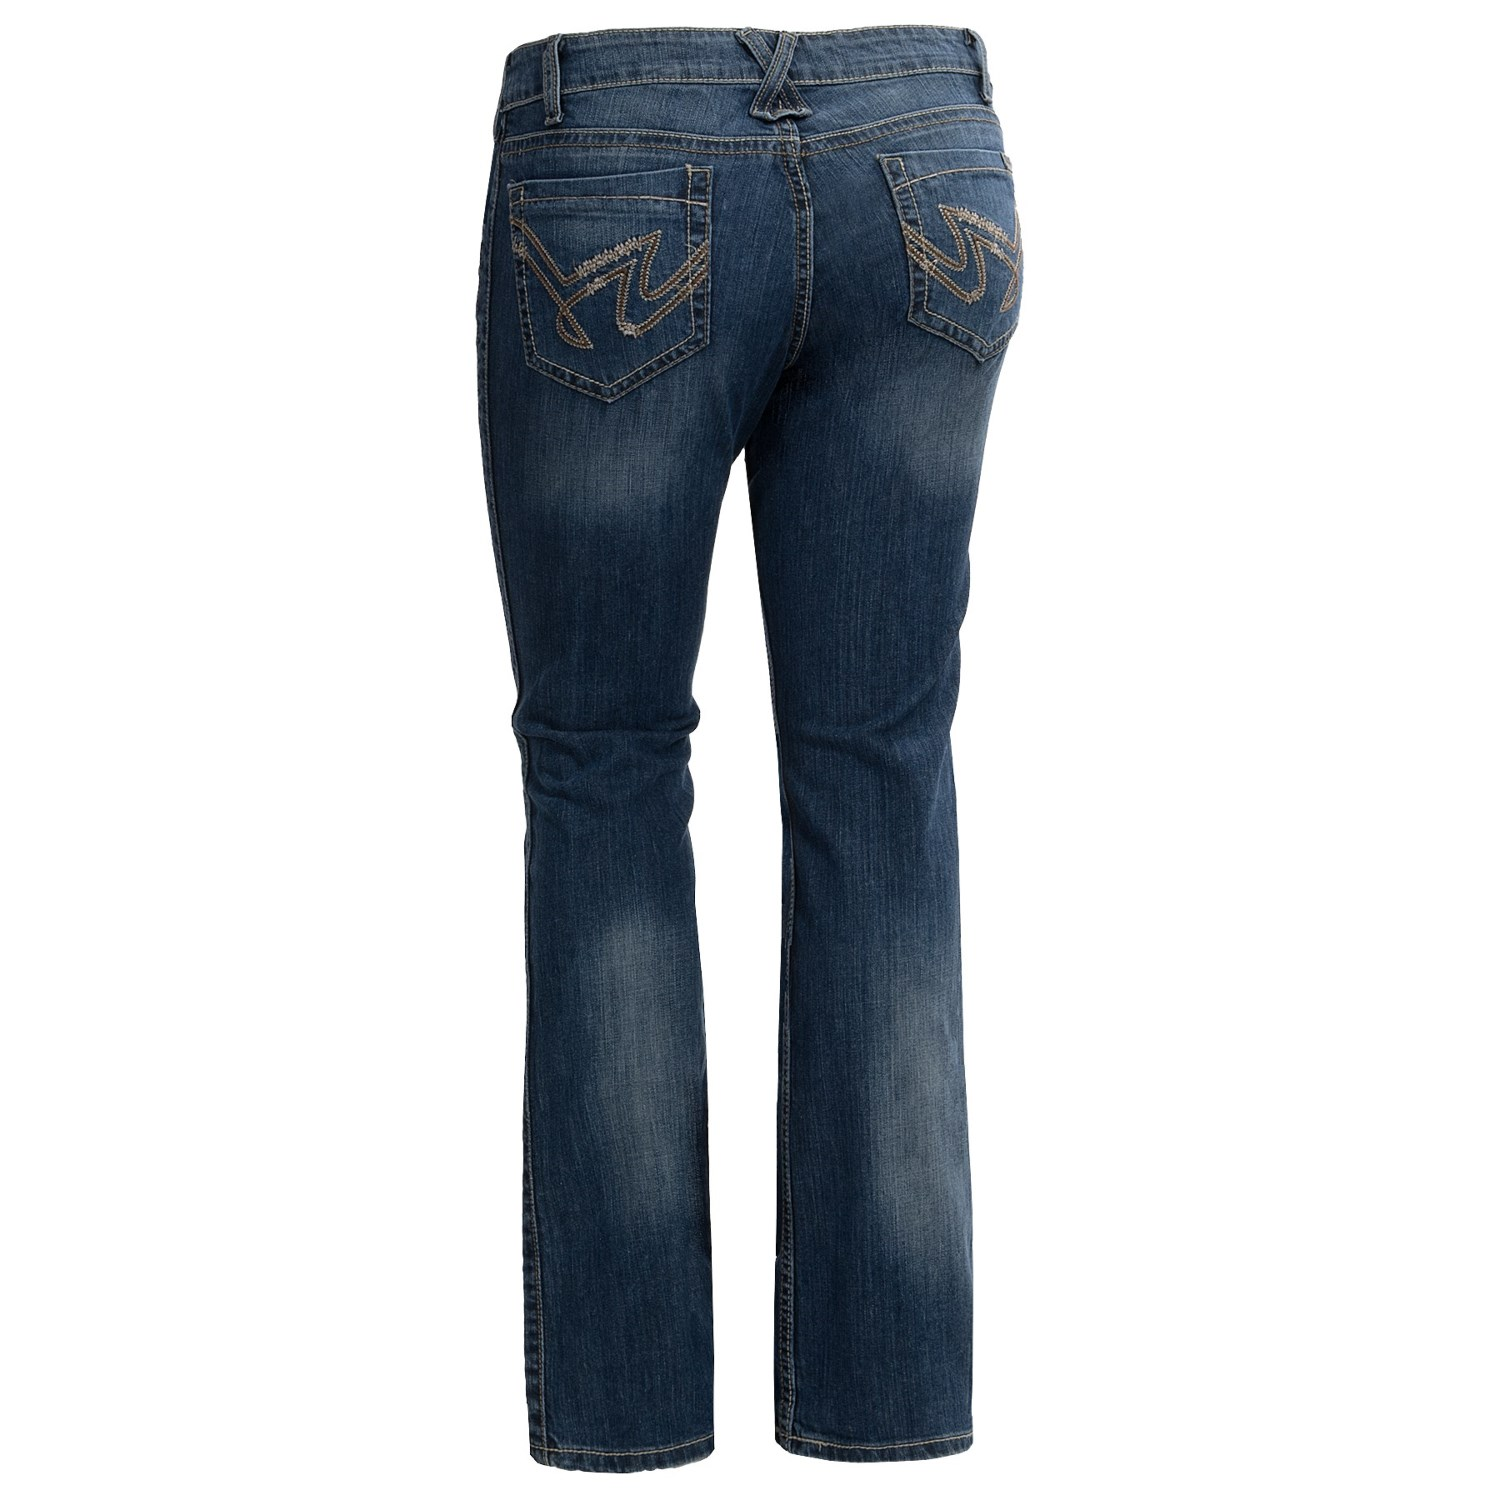 Low rise jeans girls photos Jeans Apparel for Men and Women Lee Official Site